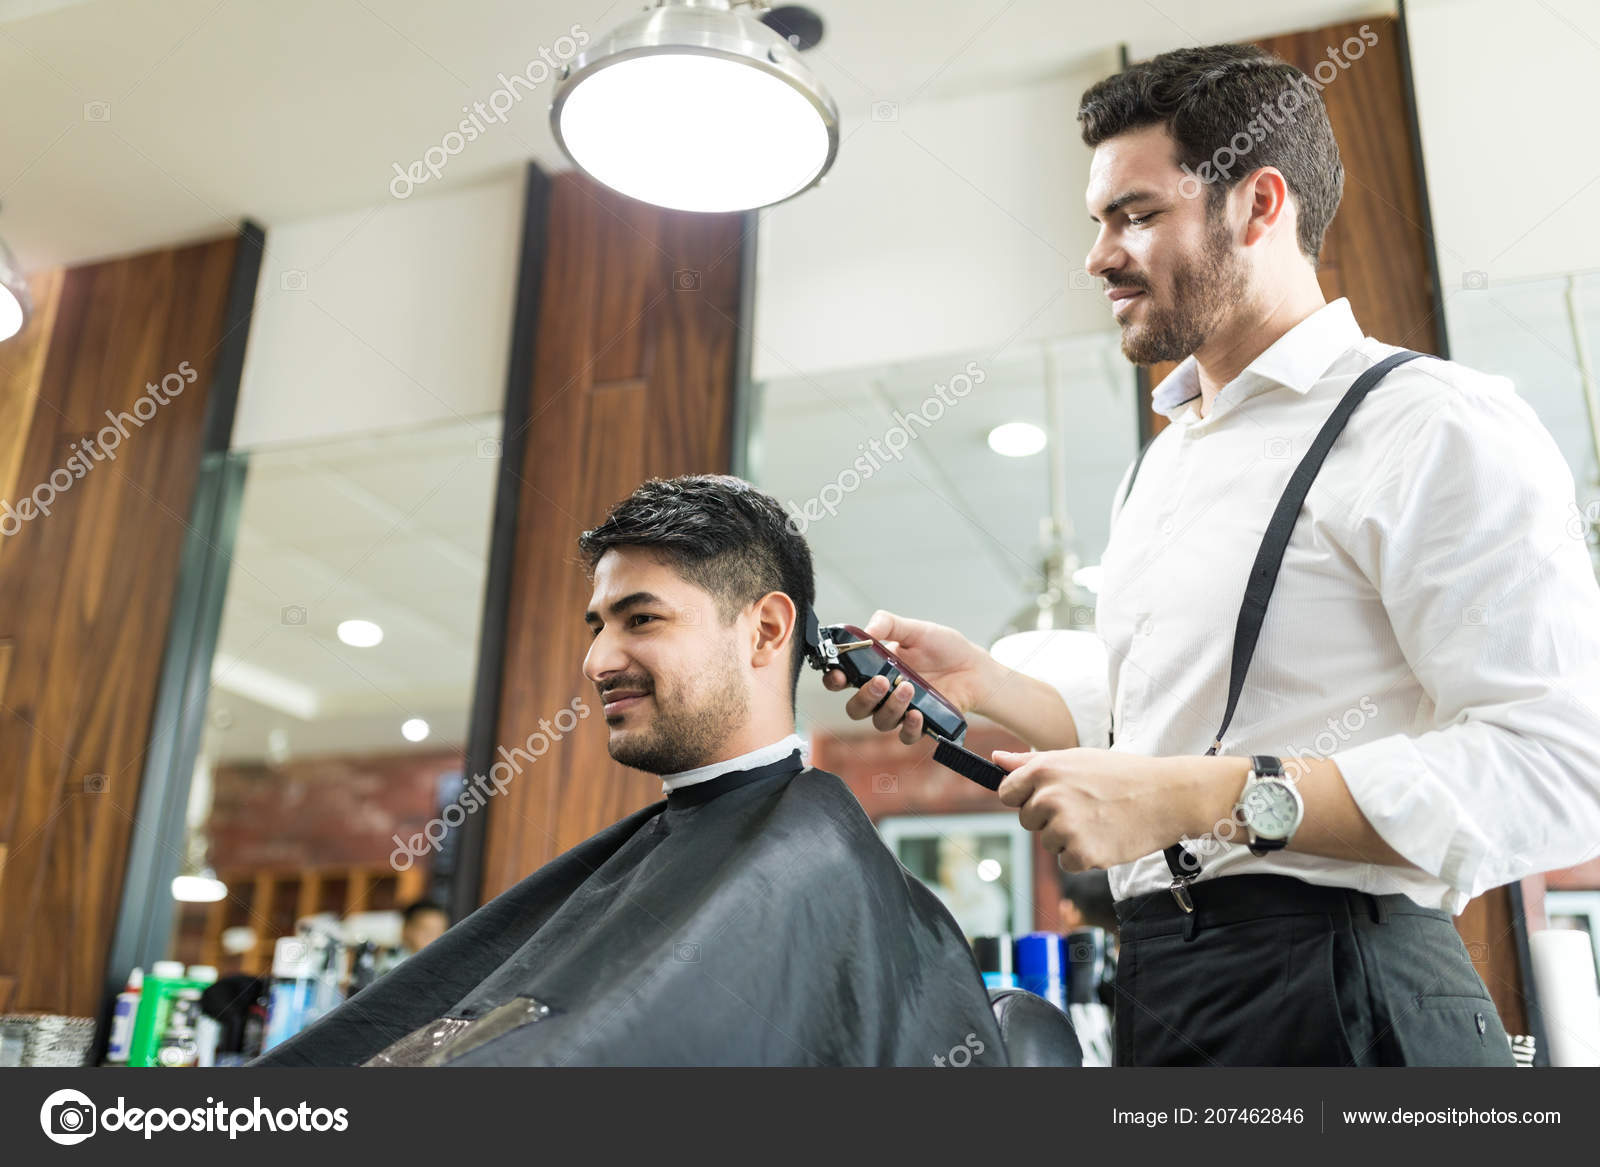 Salon Angle Low Angle View Young Professional Barber Trimming Client Hair